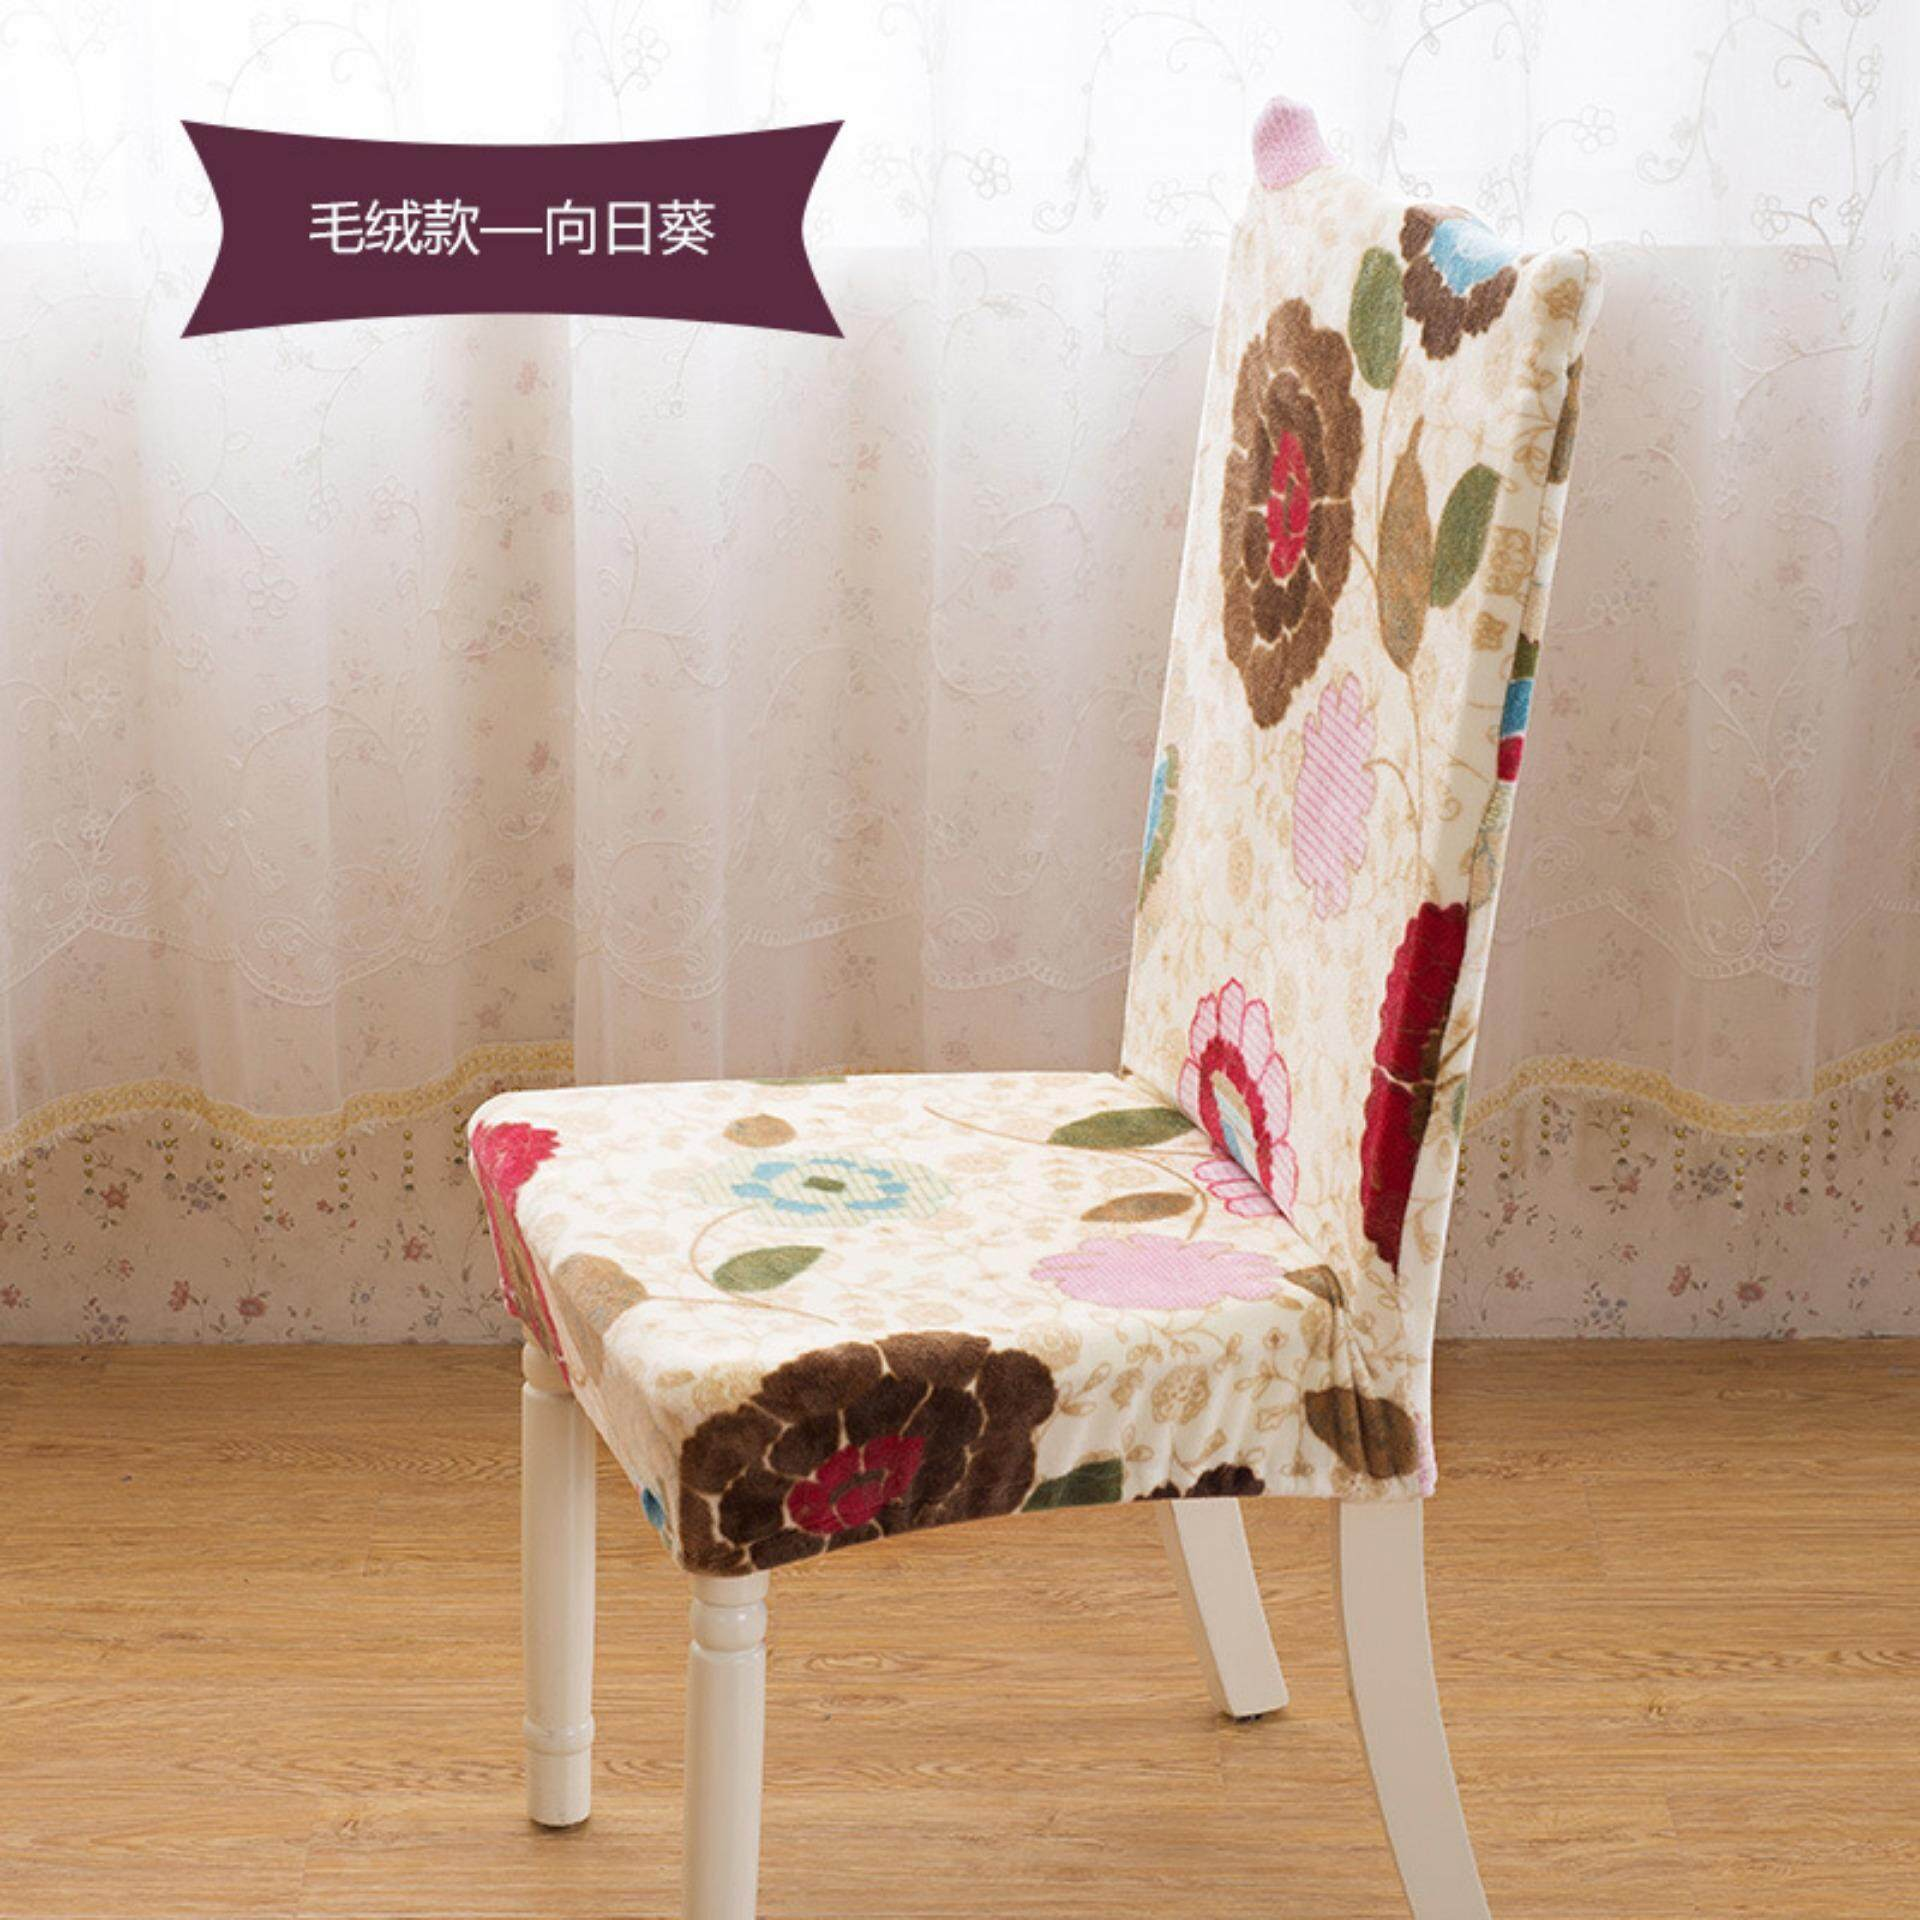 Thicken Plush Home Chair Cover Hotel Banquet Decor Polyester Stretch Dining Chair Covers For Room House universal sizes - intl